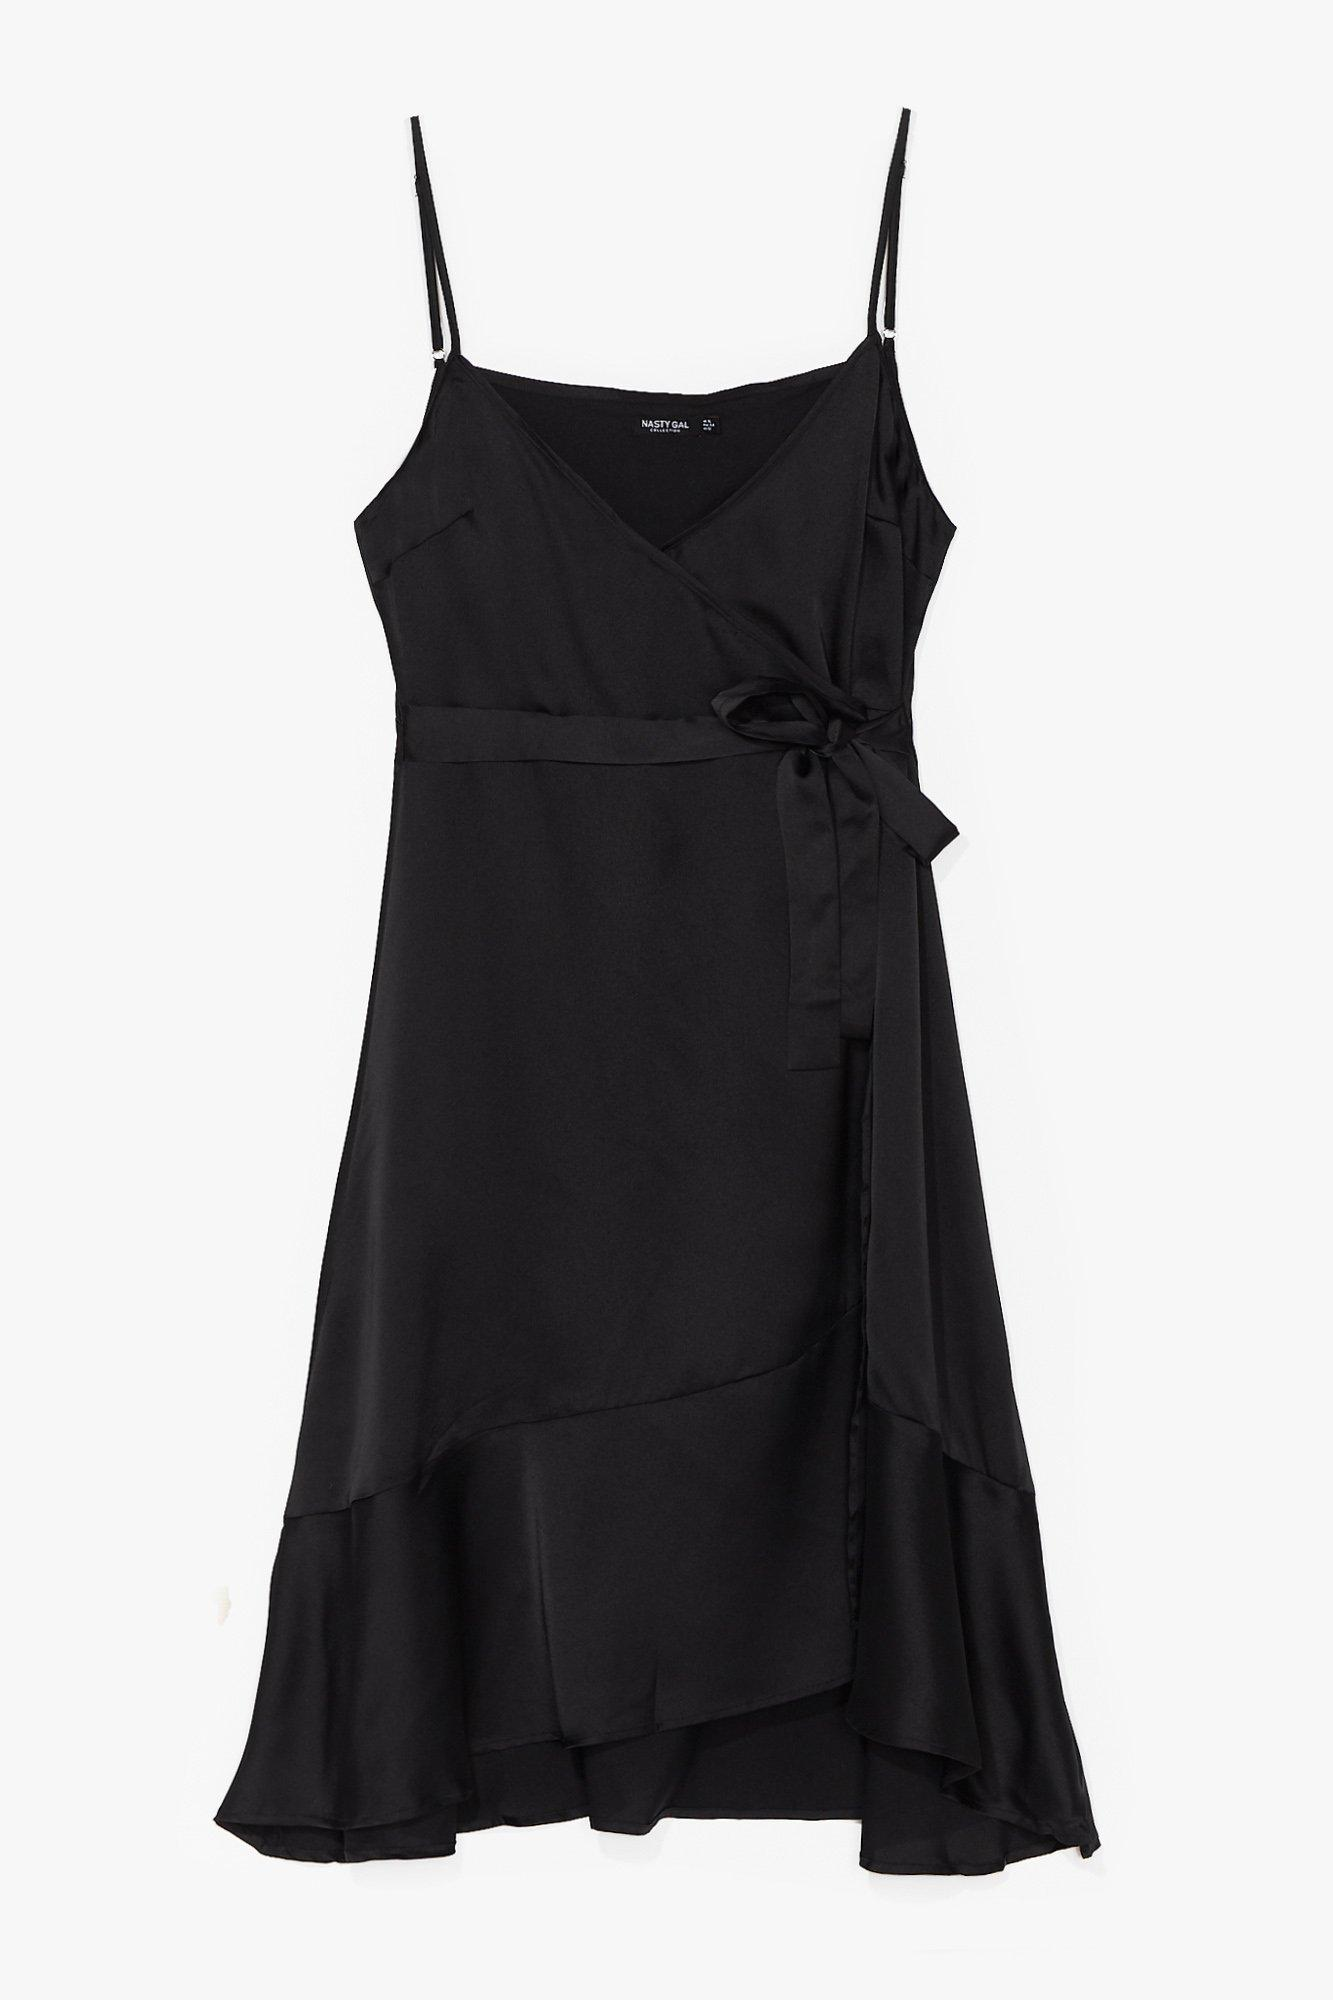 Come Alive in Night Tie Plus Wrap Dress 6